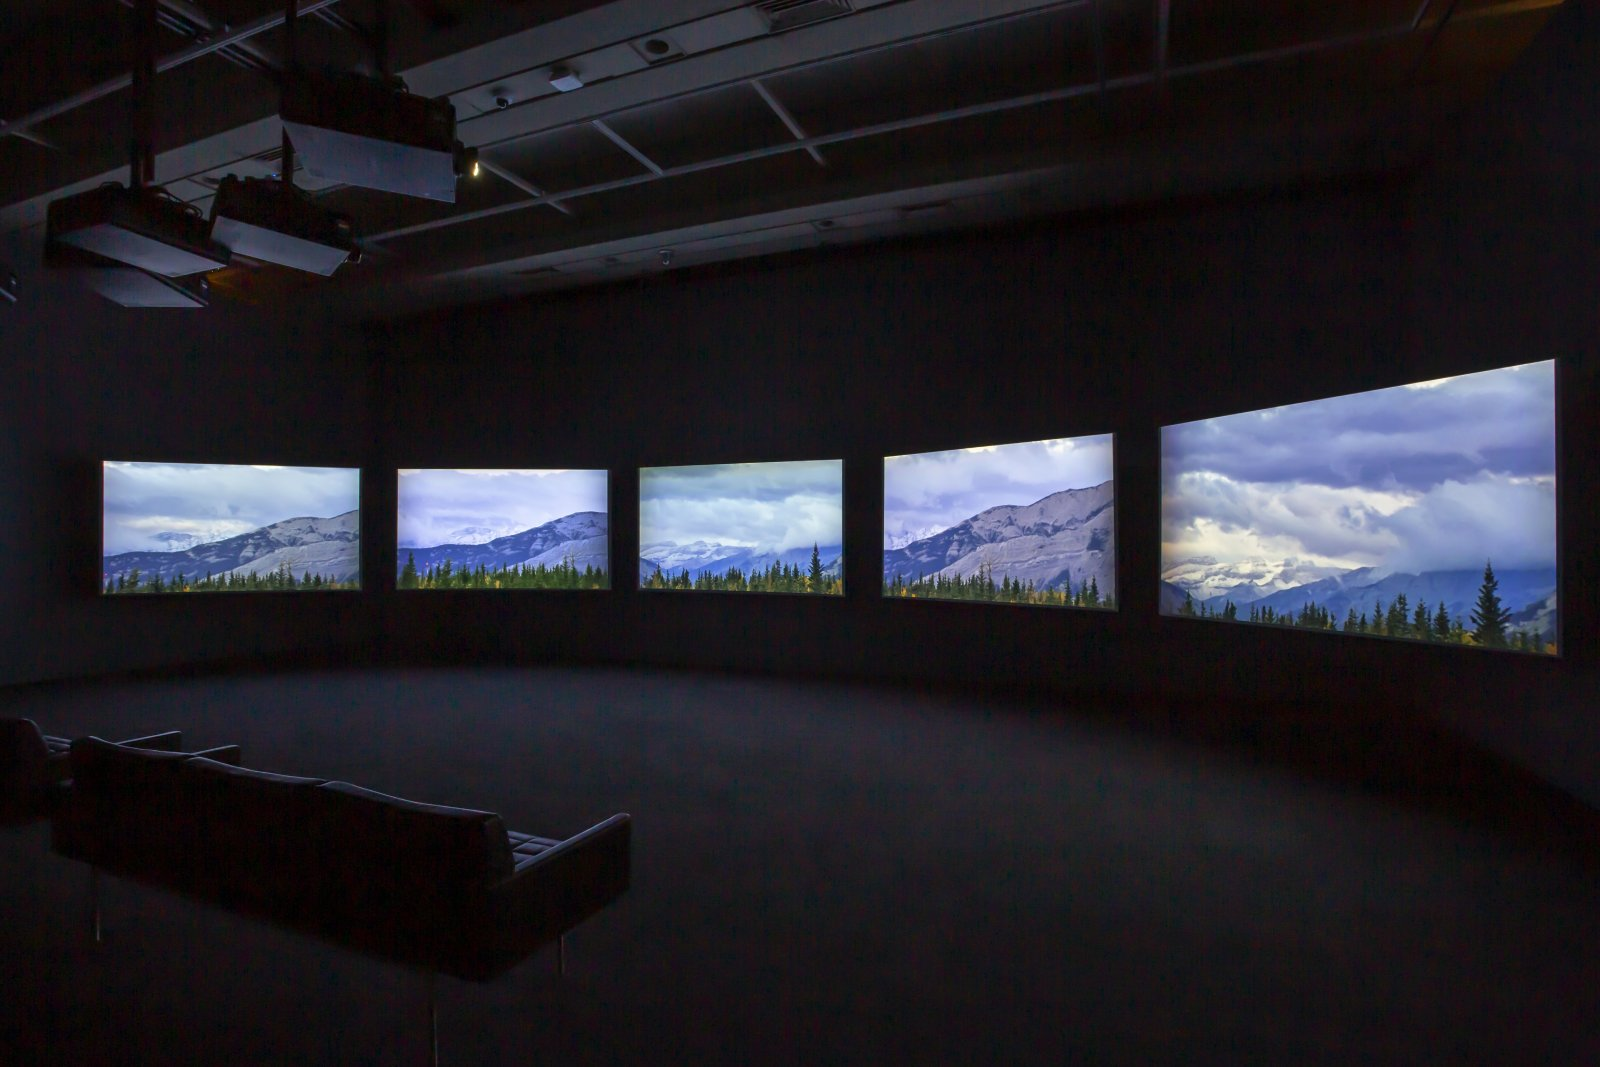 Brian Jungen and Duane Linklater, Modest Livelihood (Director's Cut), 2019, 5 channel video, colour, silent, 46 minutes, 34 seconds. Installation view, Friendship Centre, Art Gallery of Ontario, Toronto, Canada, 2019